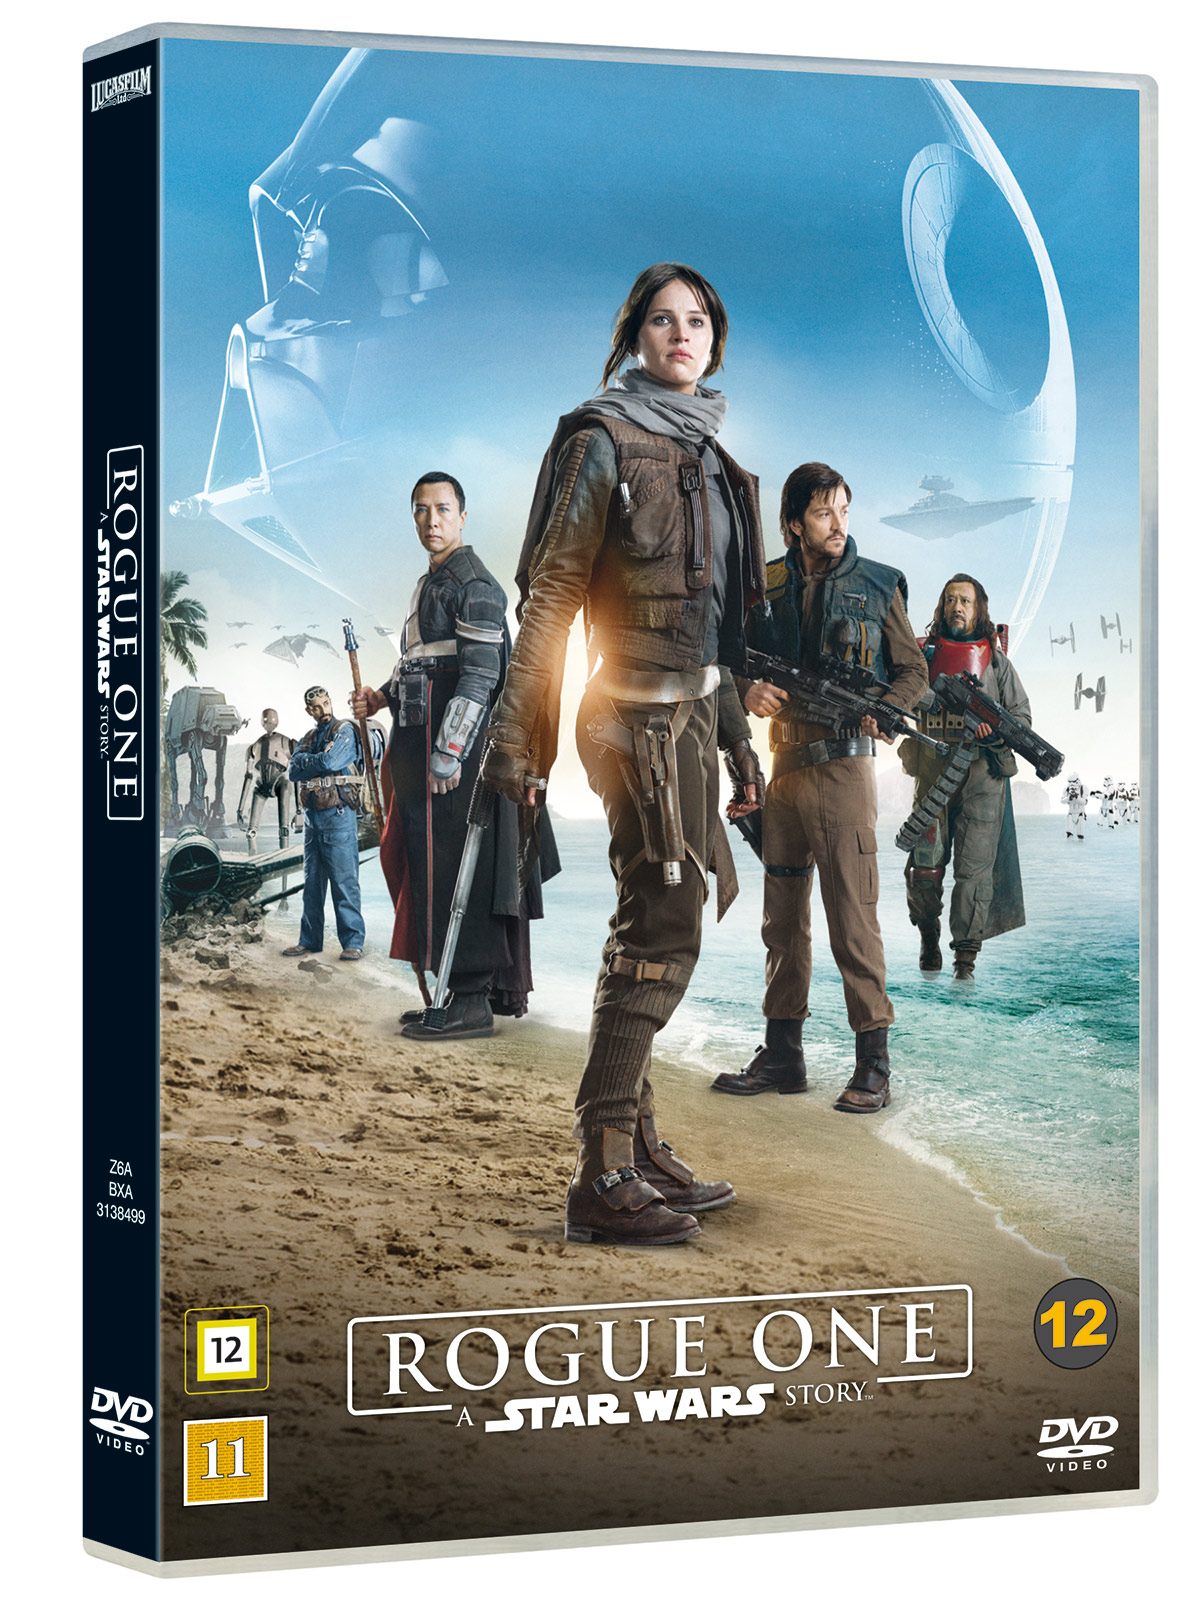 DVD: Rogue One: A Star Wars Story.